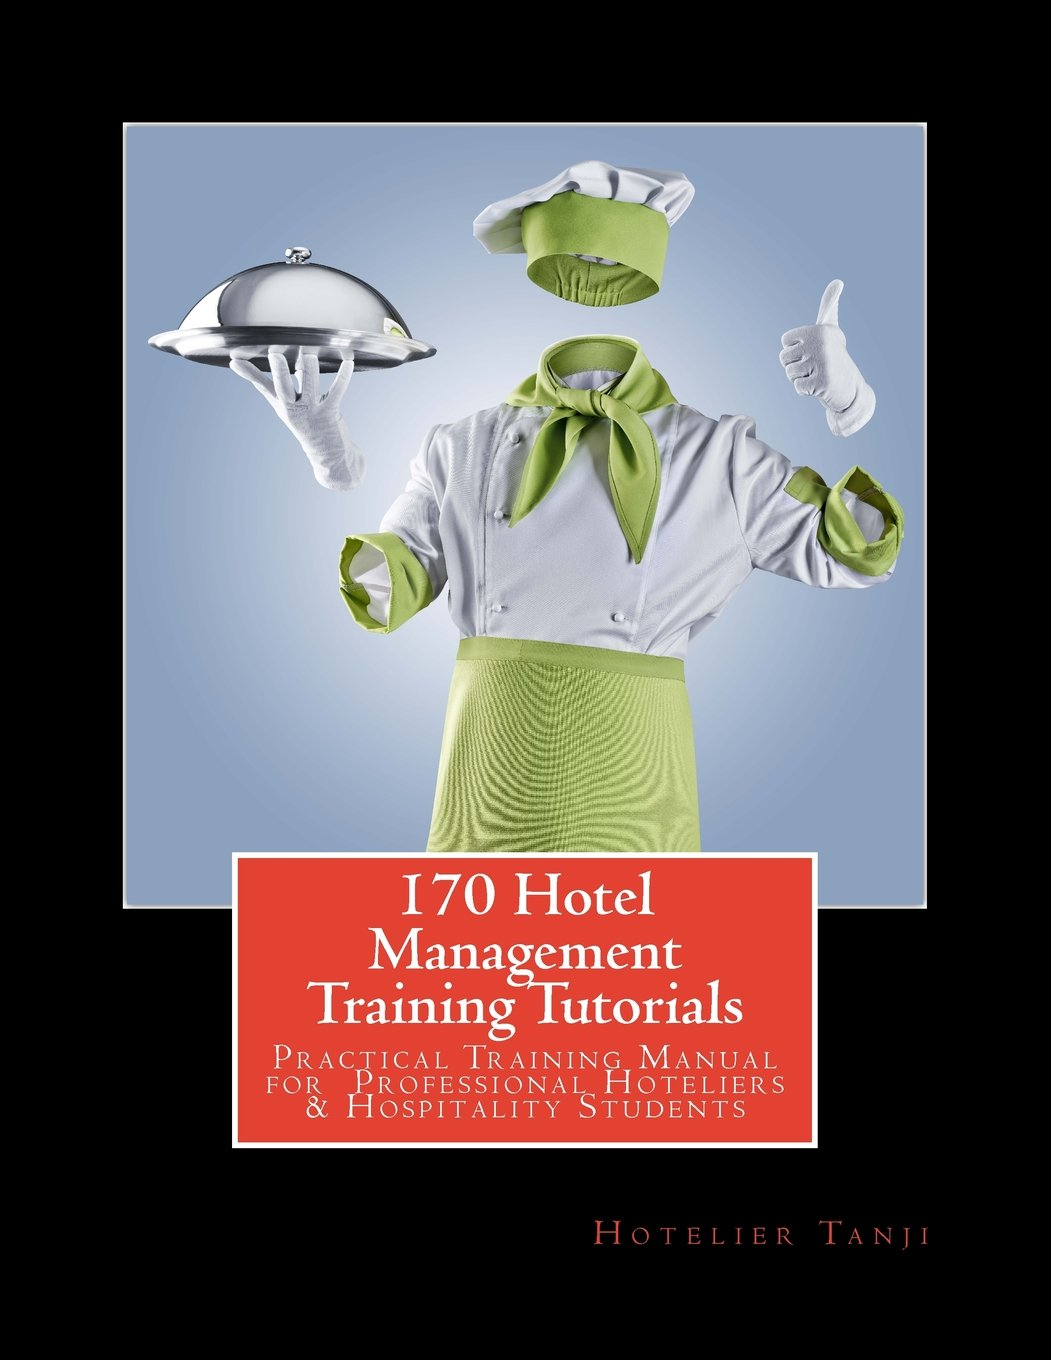 170 Hotel Management Training Tutorials: Practical Training Guide for  Professional Hoteliers & Hospitality Students: Hotelier Tanji:  9781481075466: ...